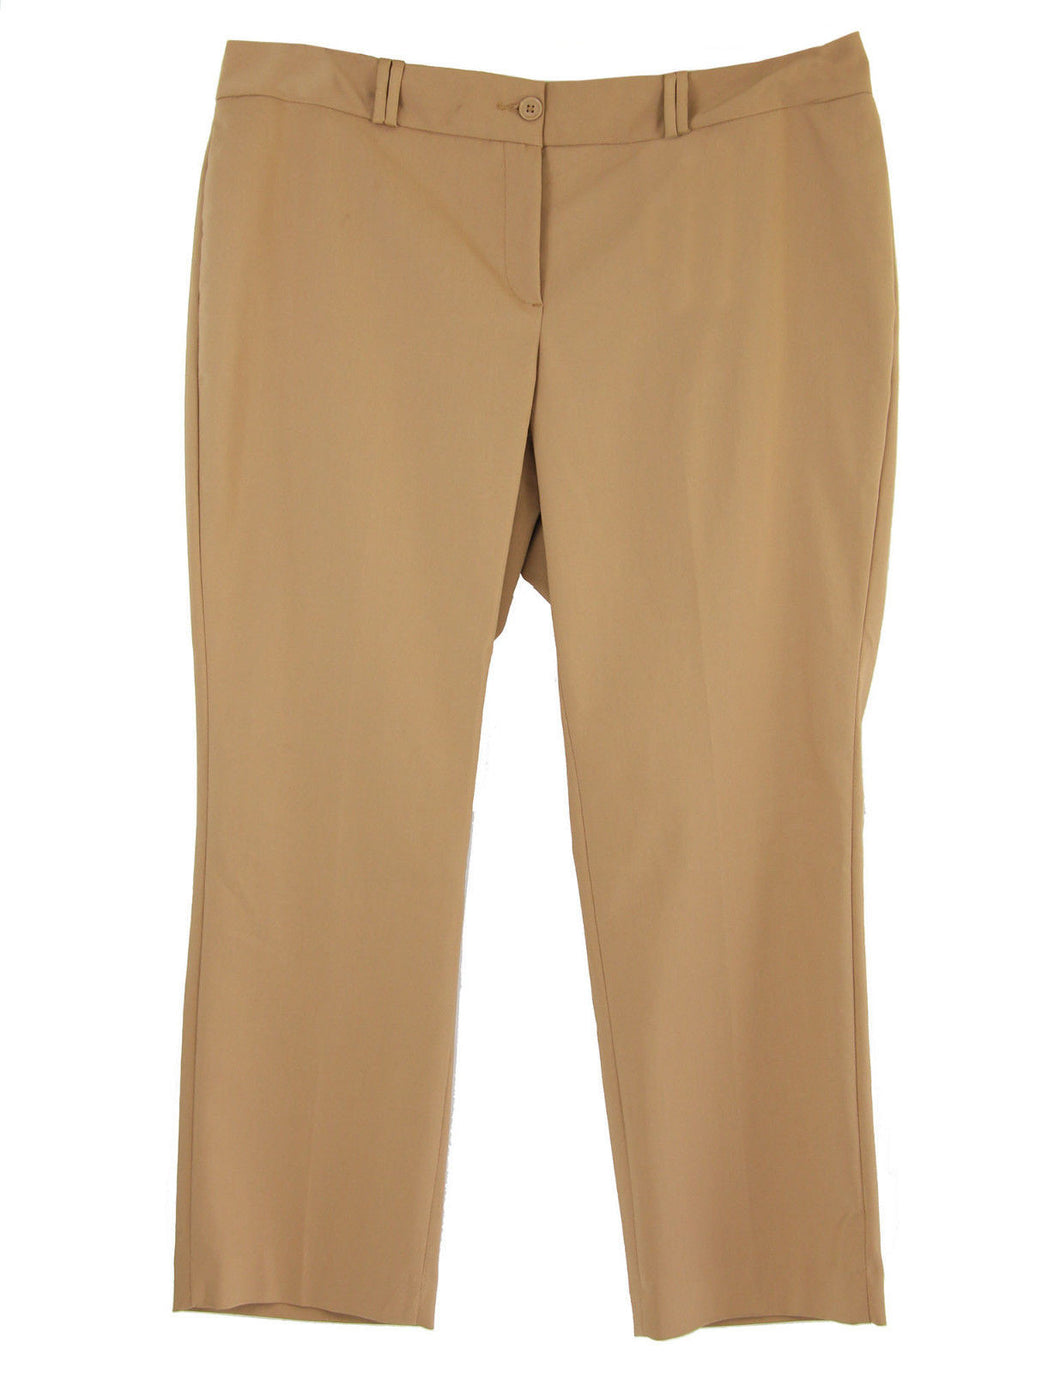 Charter Club Dark Beige Tummy Slimming Slim Leg Ankle Length Pants